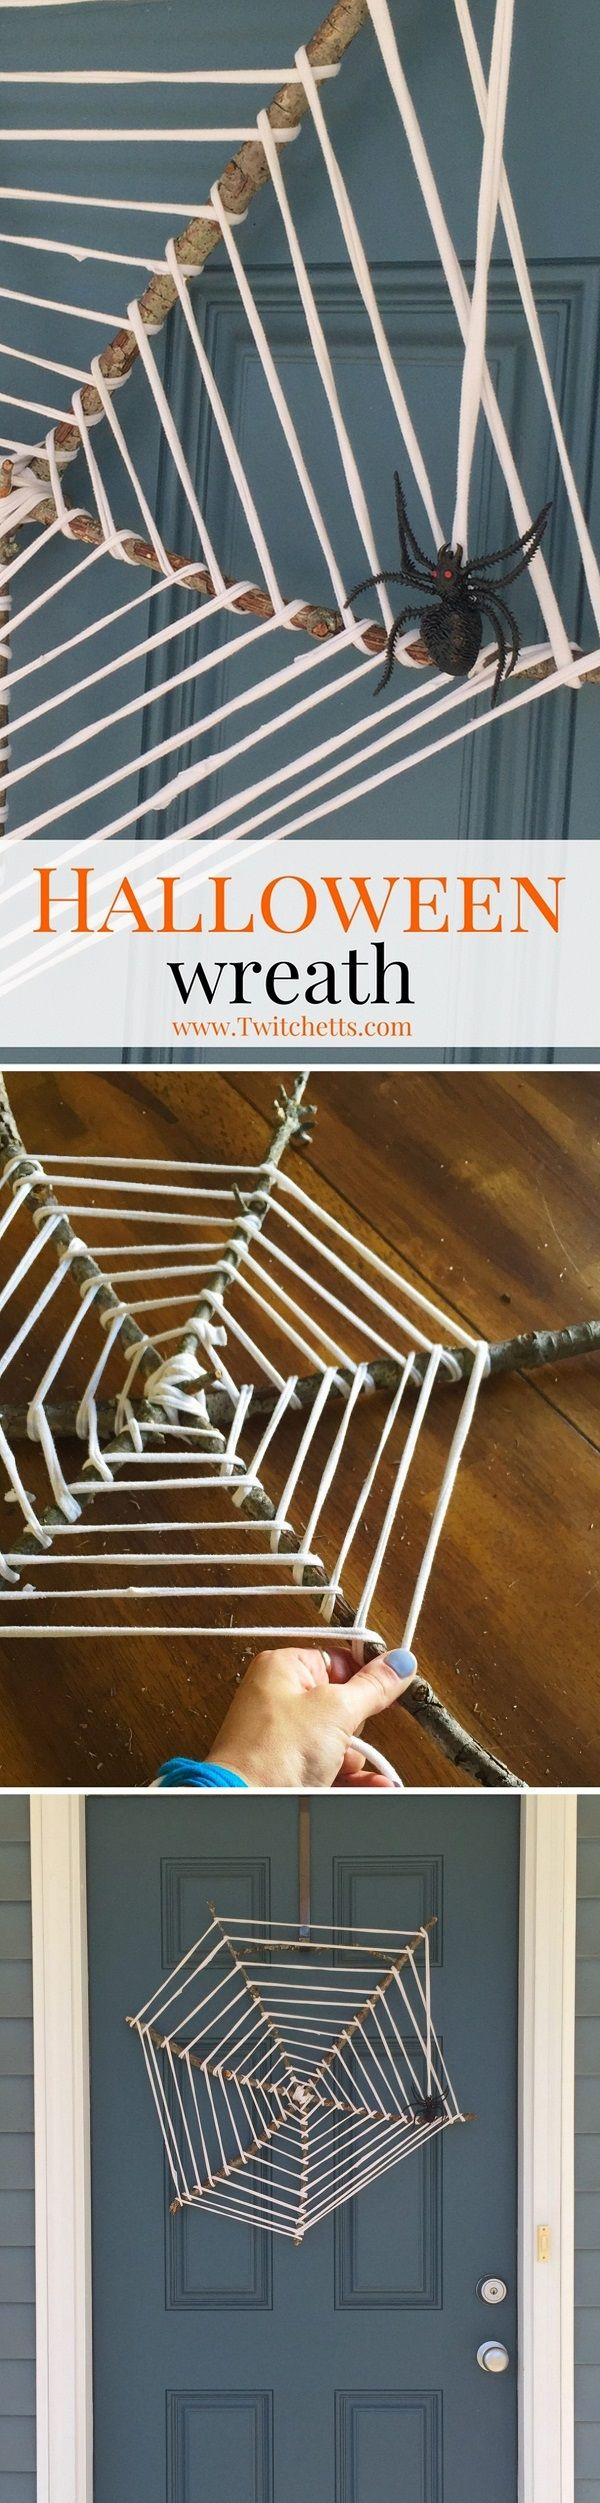 Check out the tutorial on how to make an upcycled #DIY spider web wreath for Halloween home decoration #Halloween #upcycle #repurpose #homedecor @istandarddesign